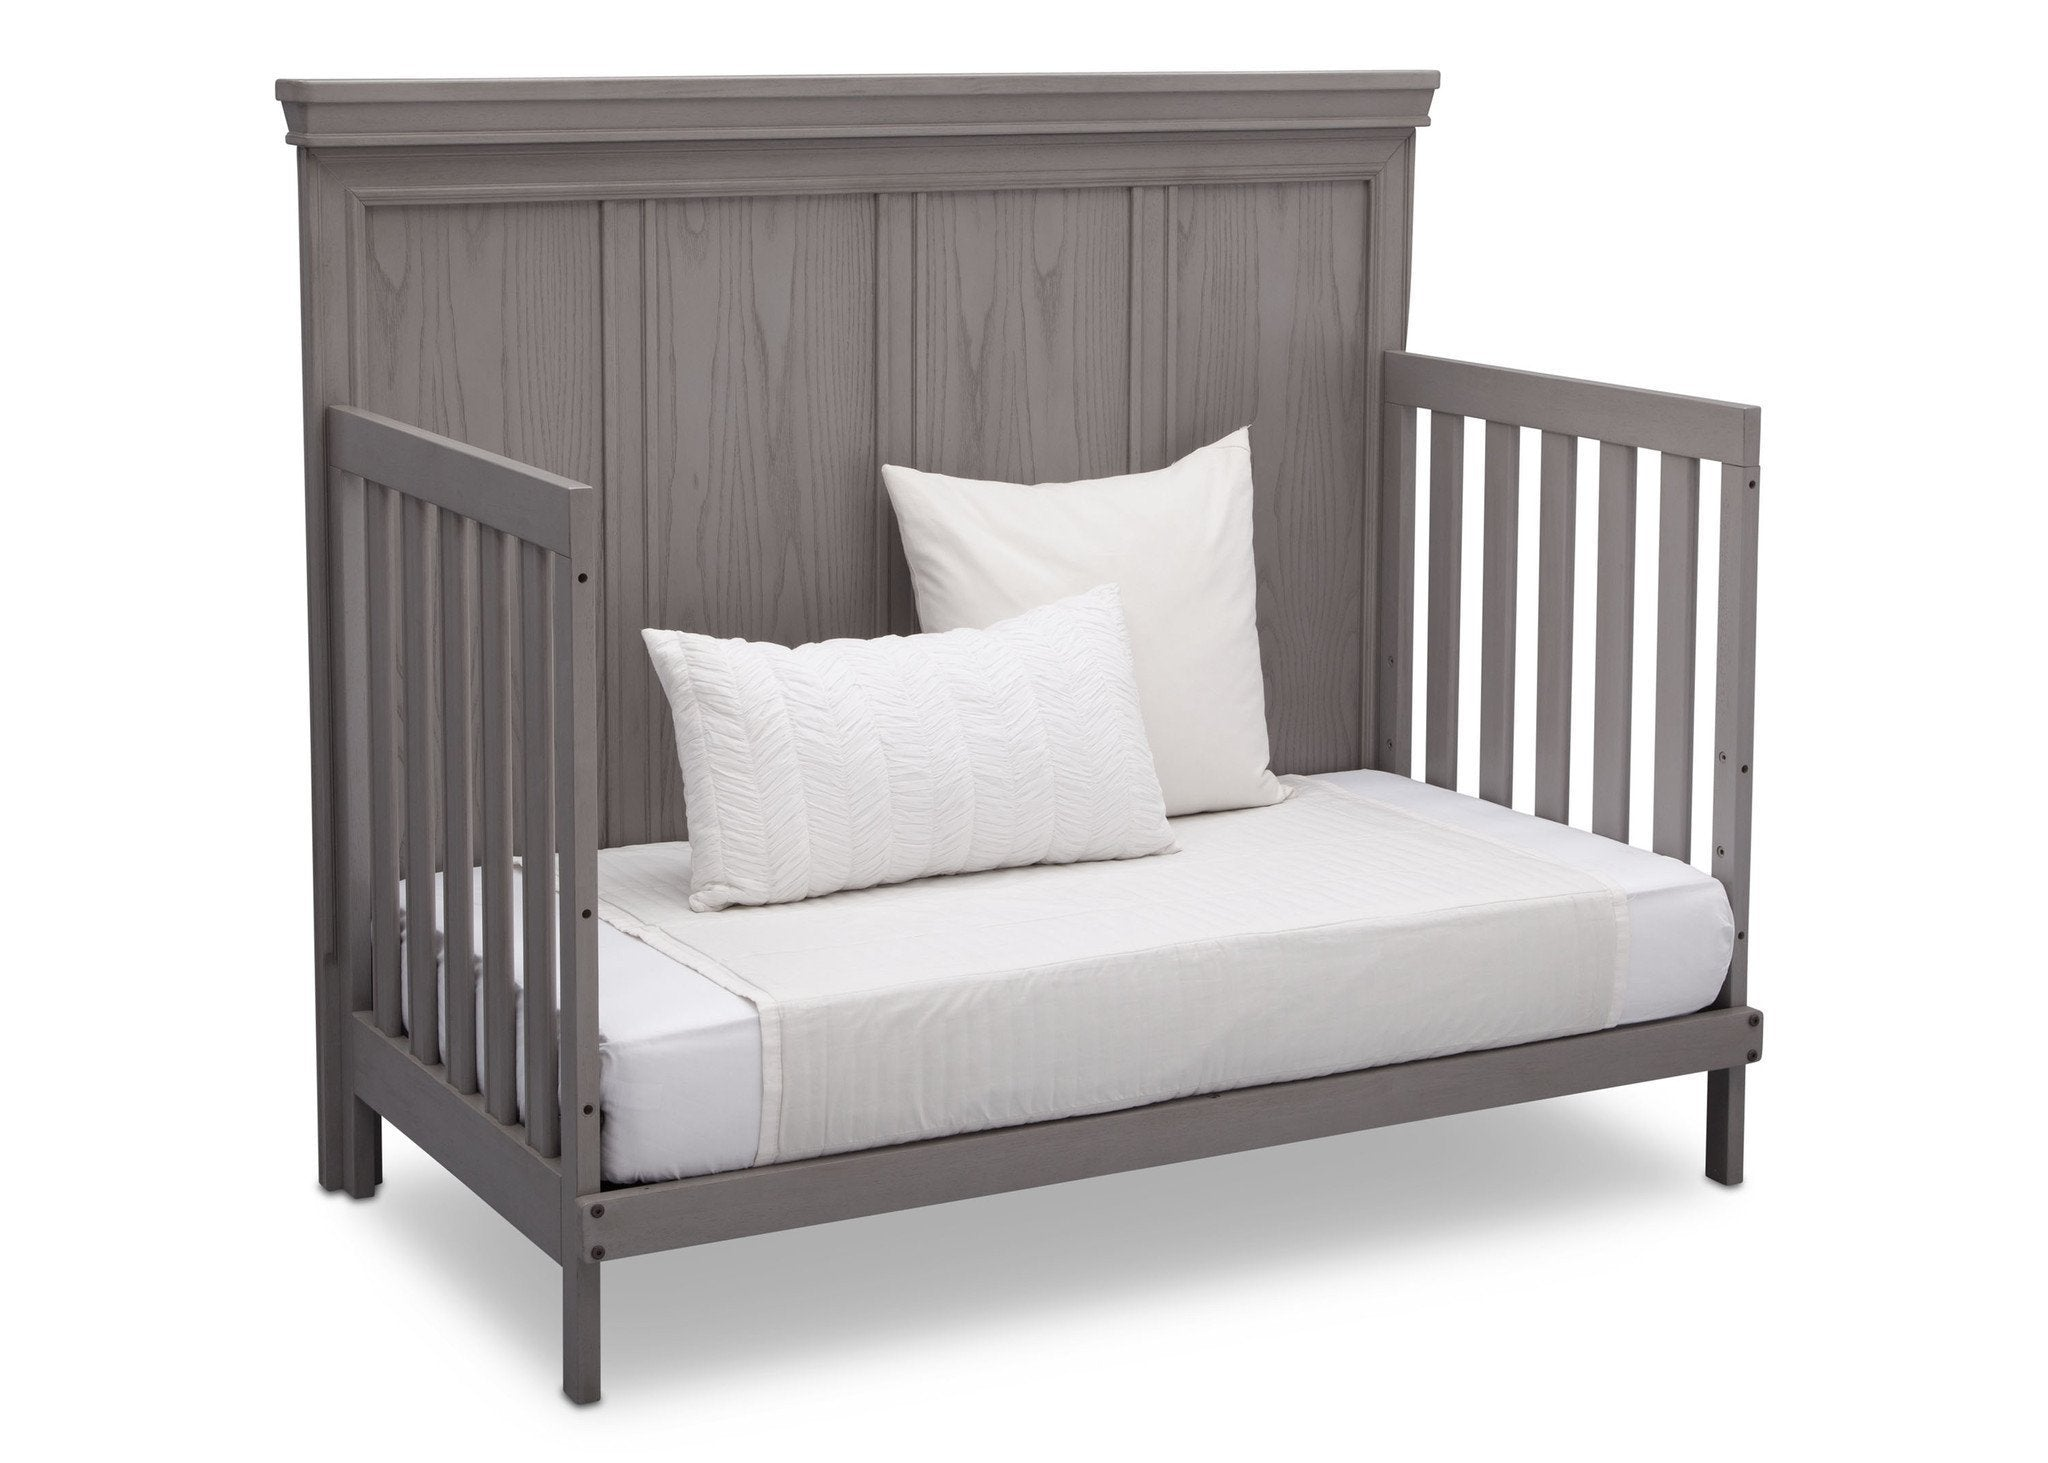 Simmons Kids Storm (161) Ravello Crib 'N' More, Angled Conversion to DayBed View, a5a